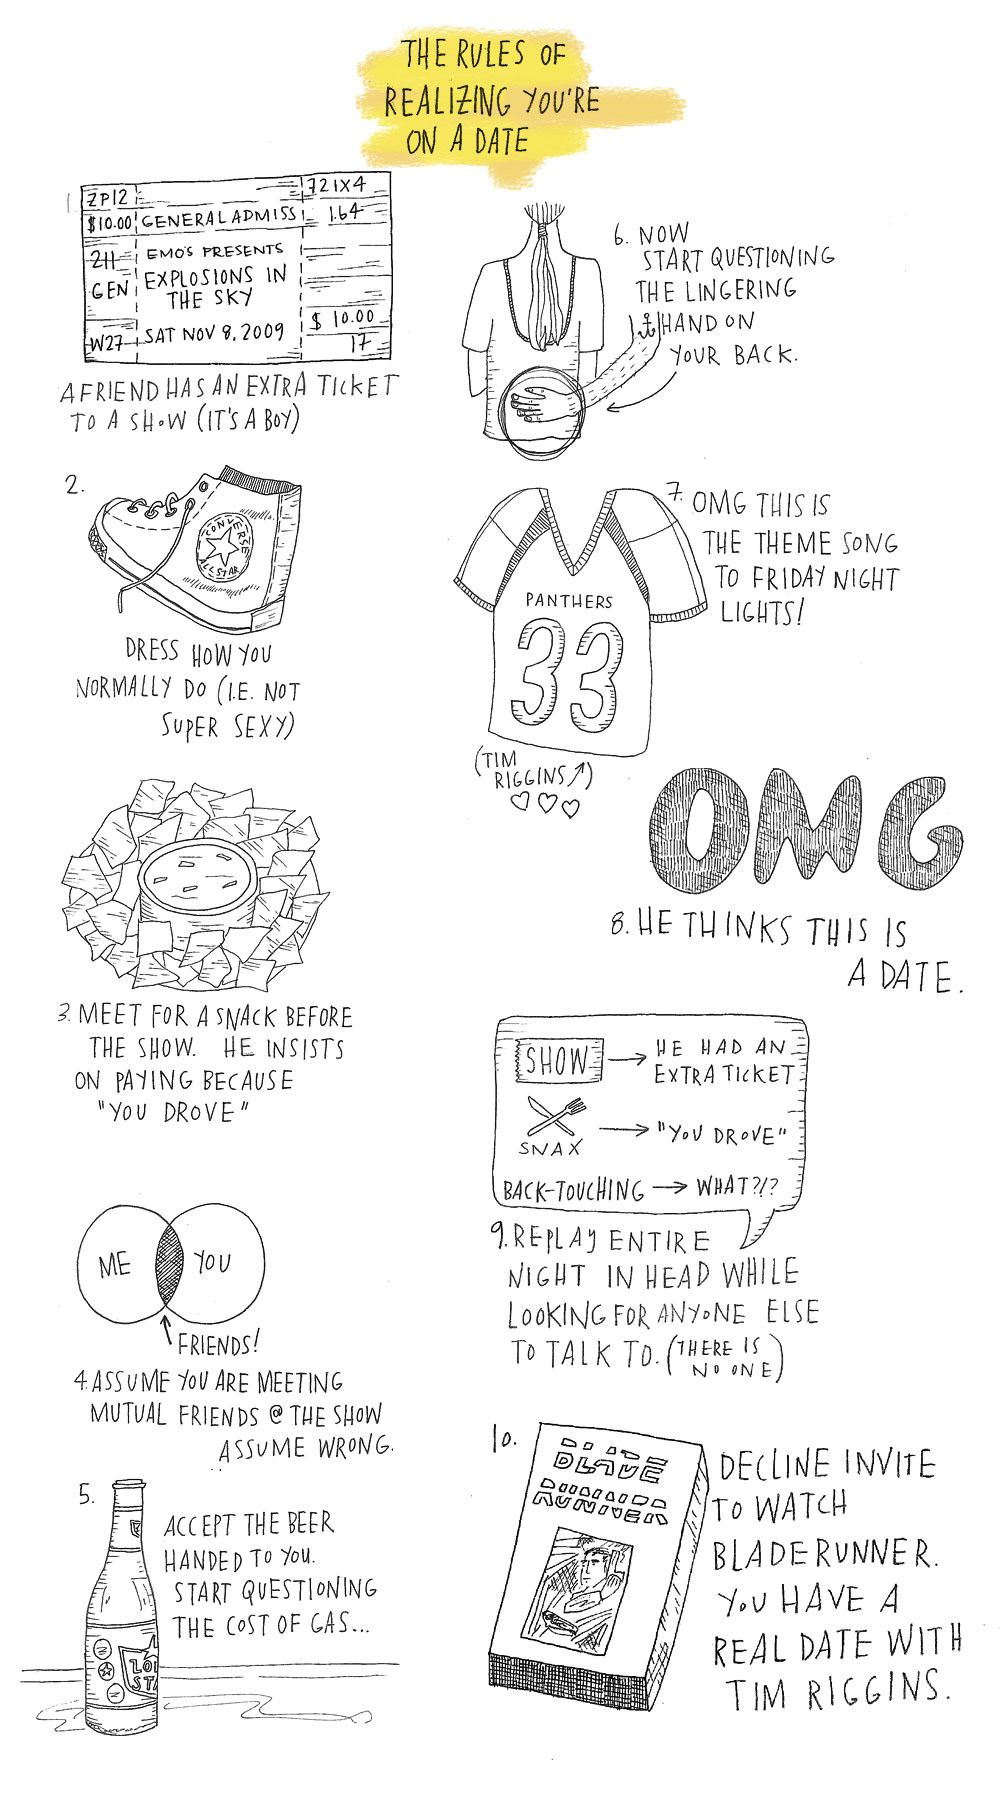 The Rules of Realizing You're on a Date